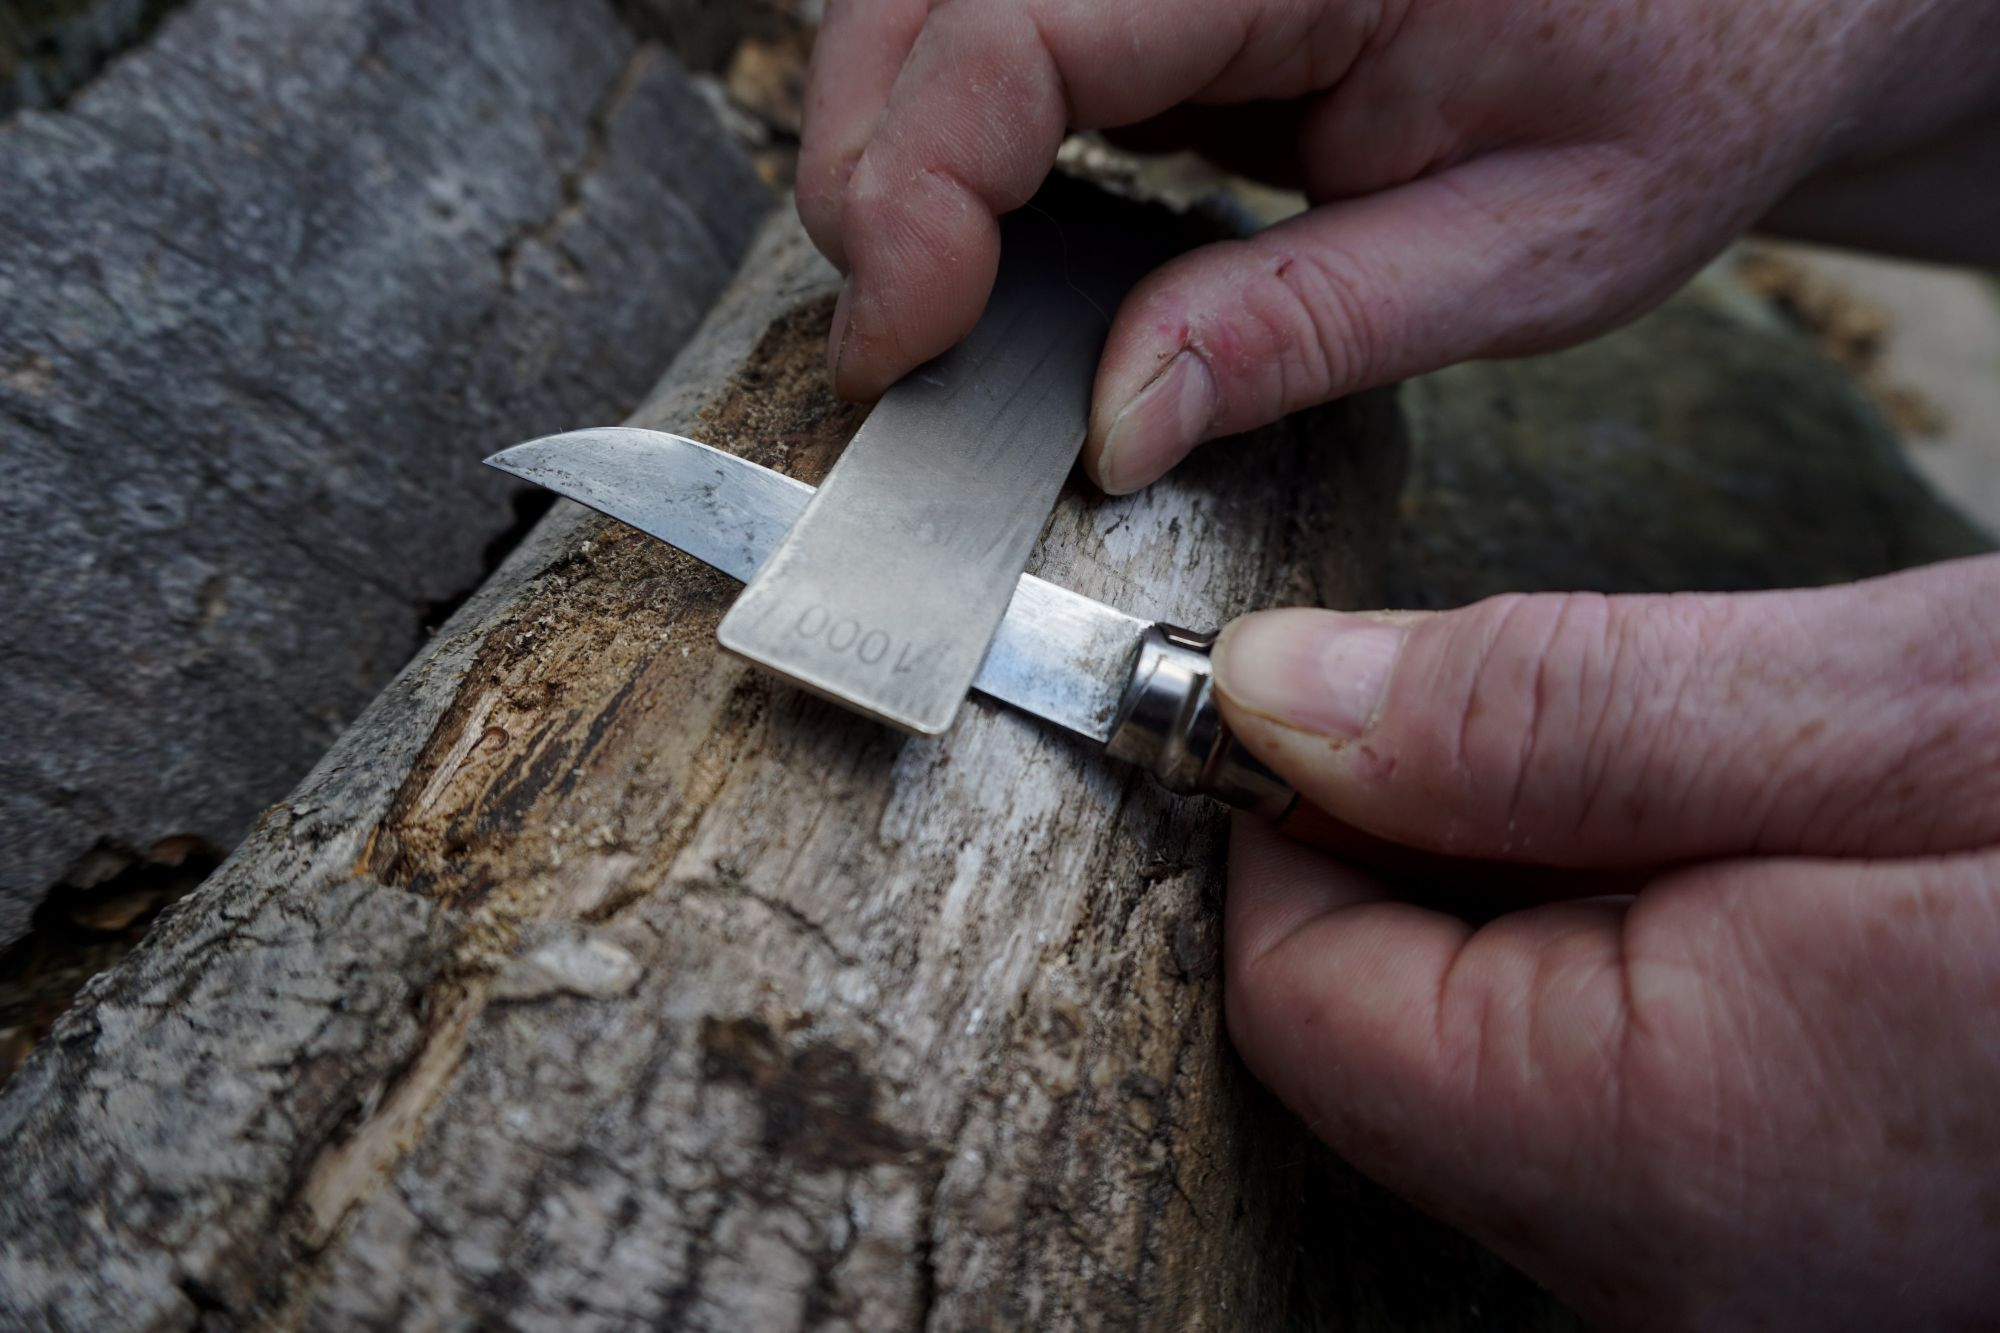 Keep Scrubbing the blade until you have a Burr